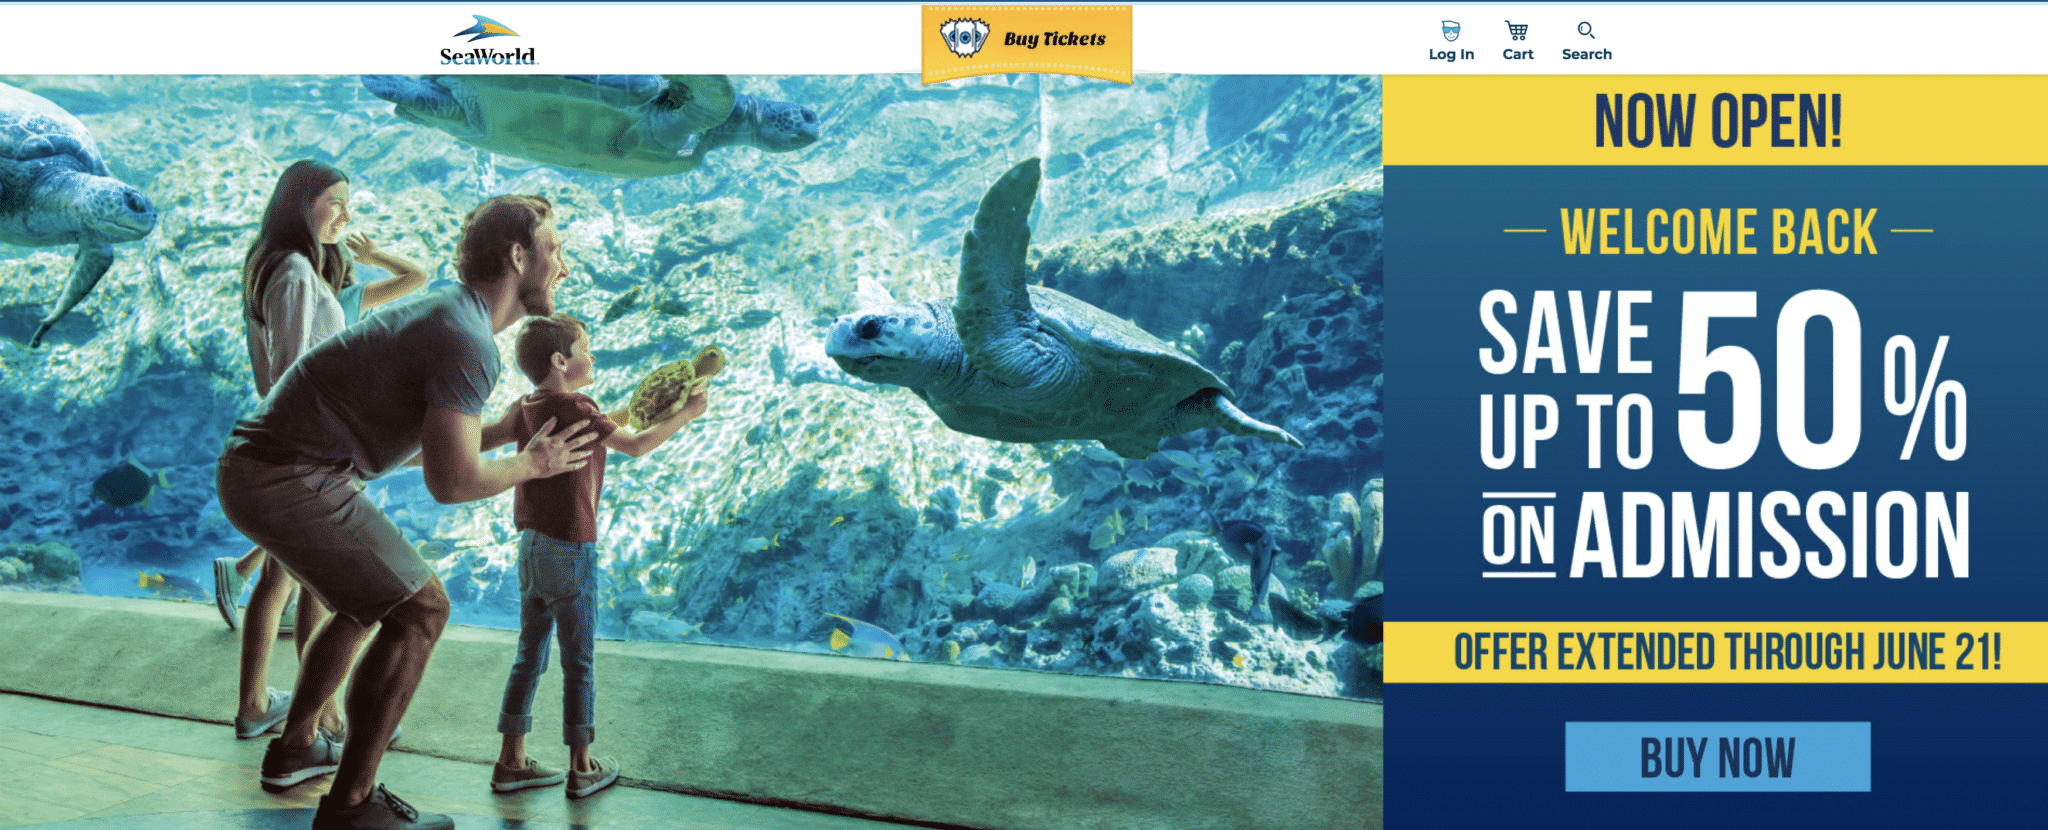 Sale sign from SeaWorld website